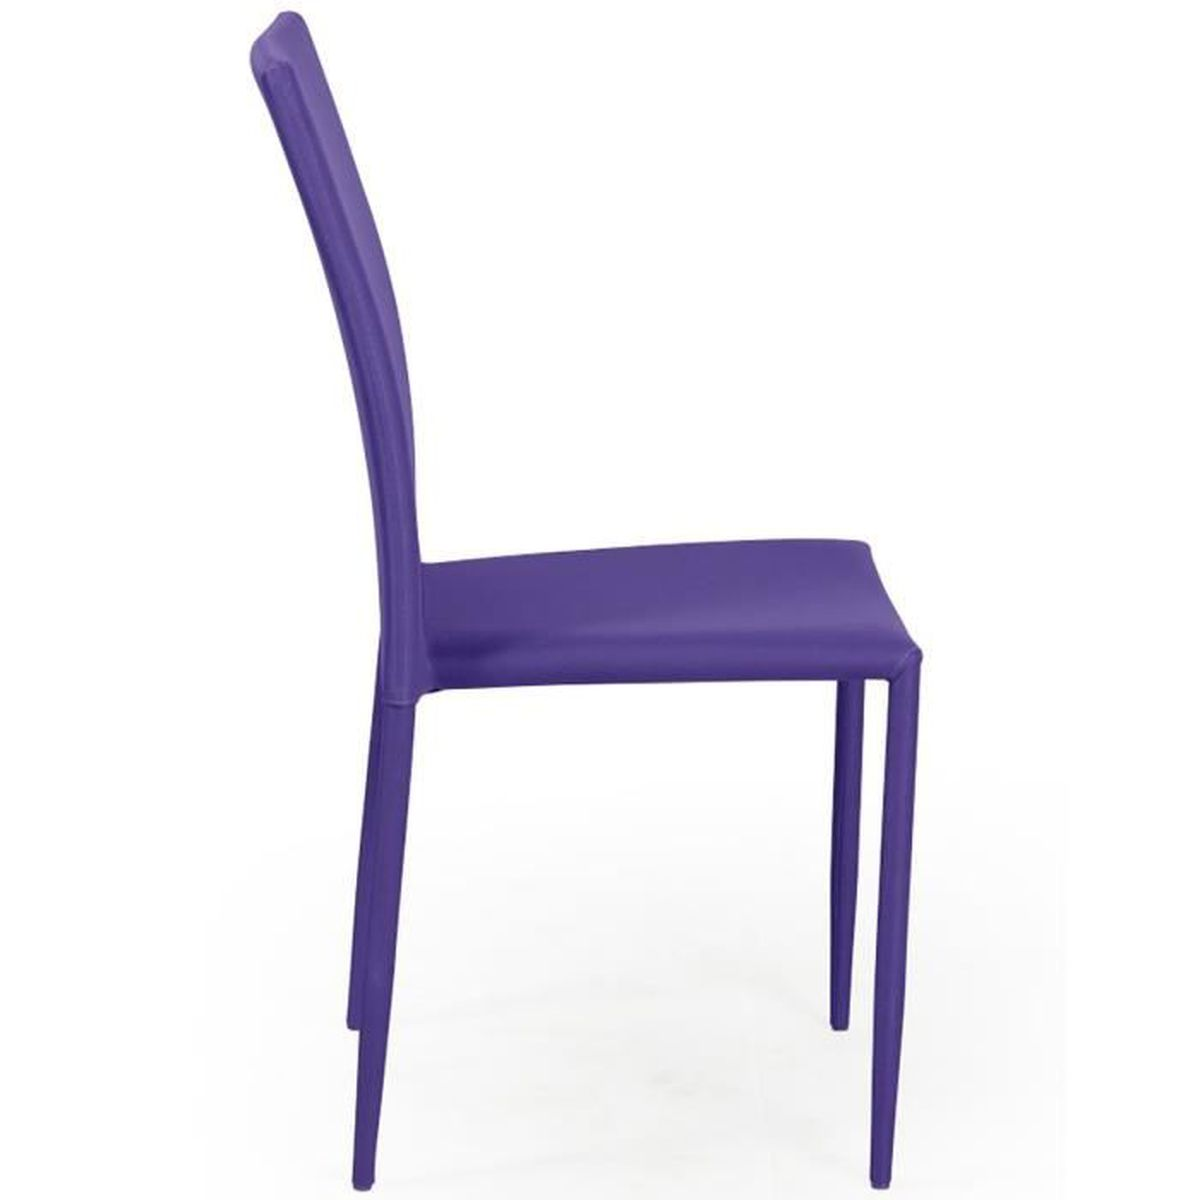 f3a573db939216 Loola - Lot 4 Chaises Prune - Achat / Vente chaise Violet - Cdiscount